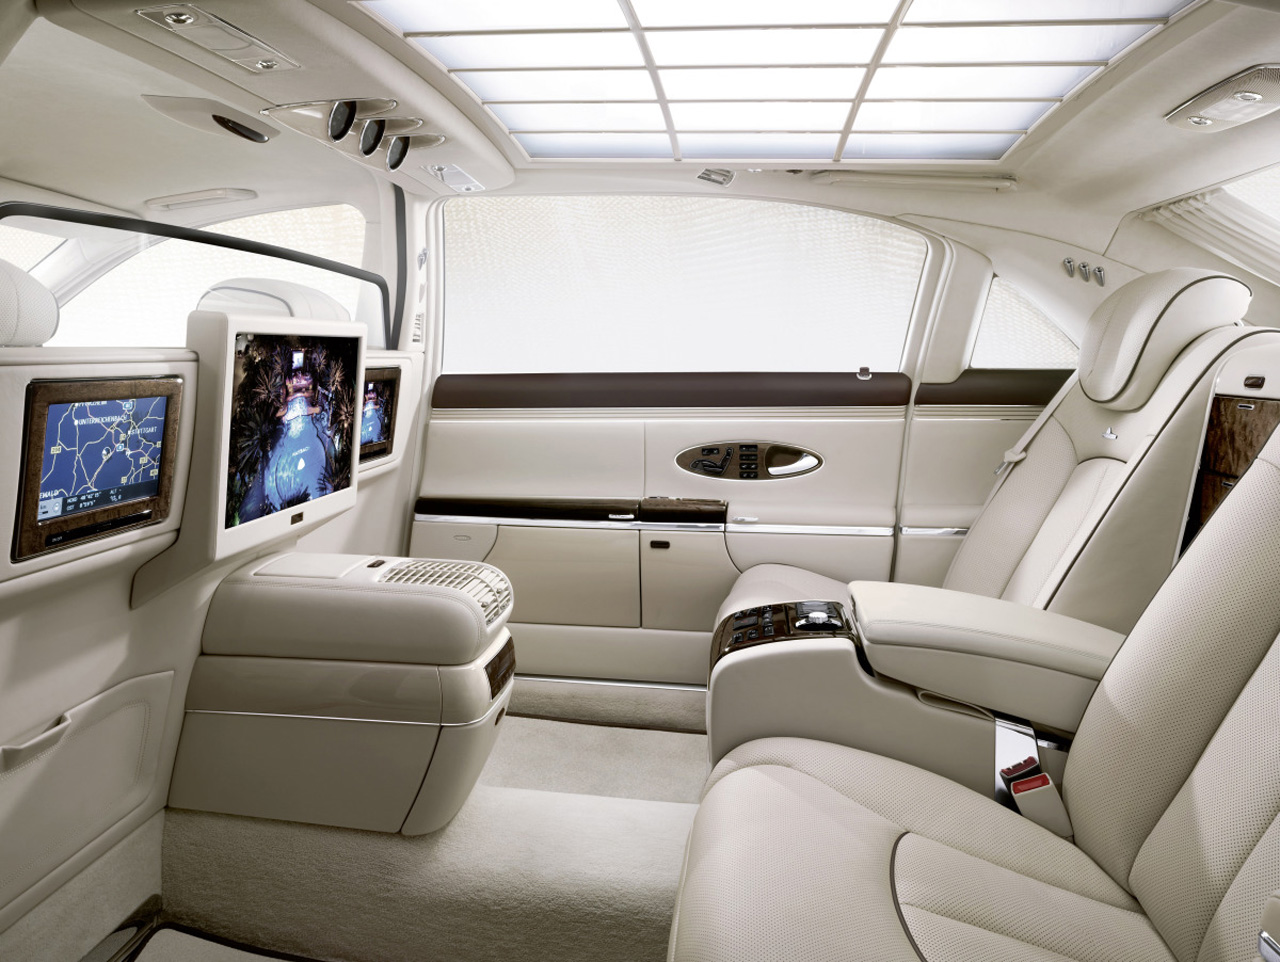 daimler car makers increases prices on 2012 maybach models. Black Bedroom Furniture Sets. Home Design Ideas